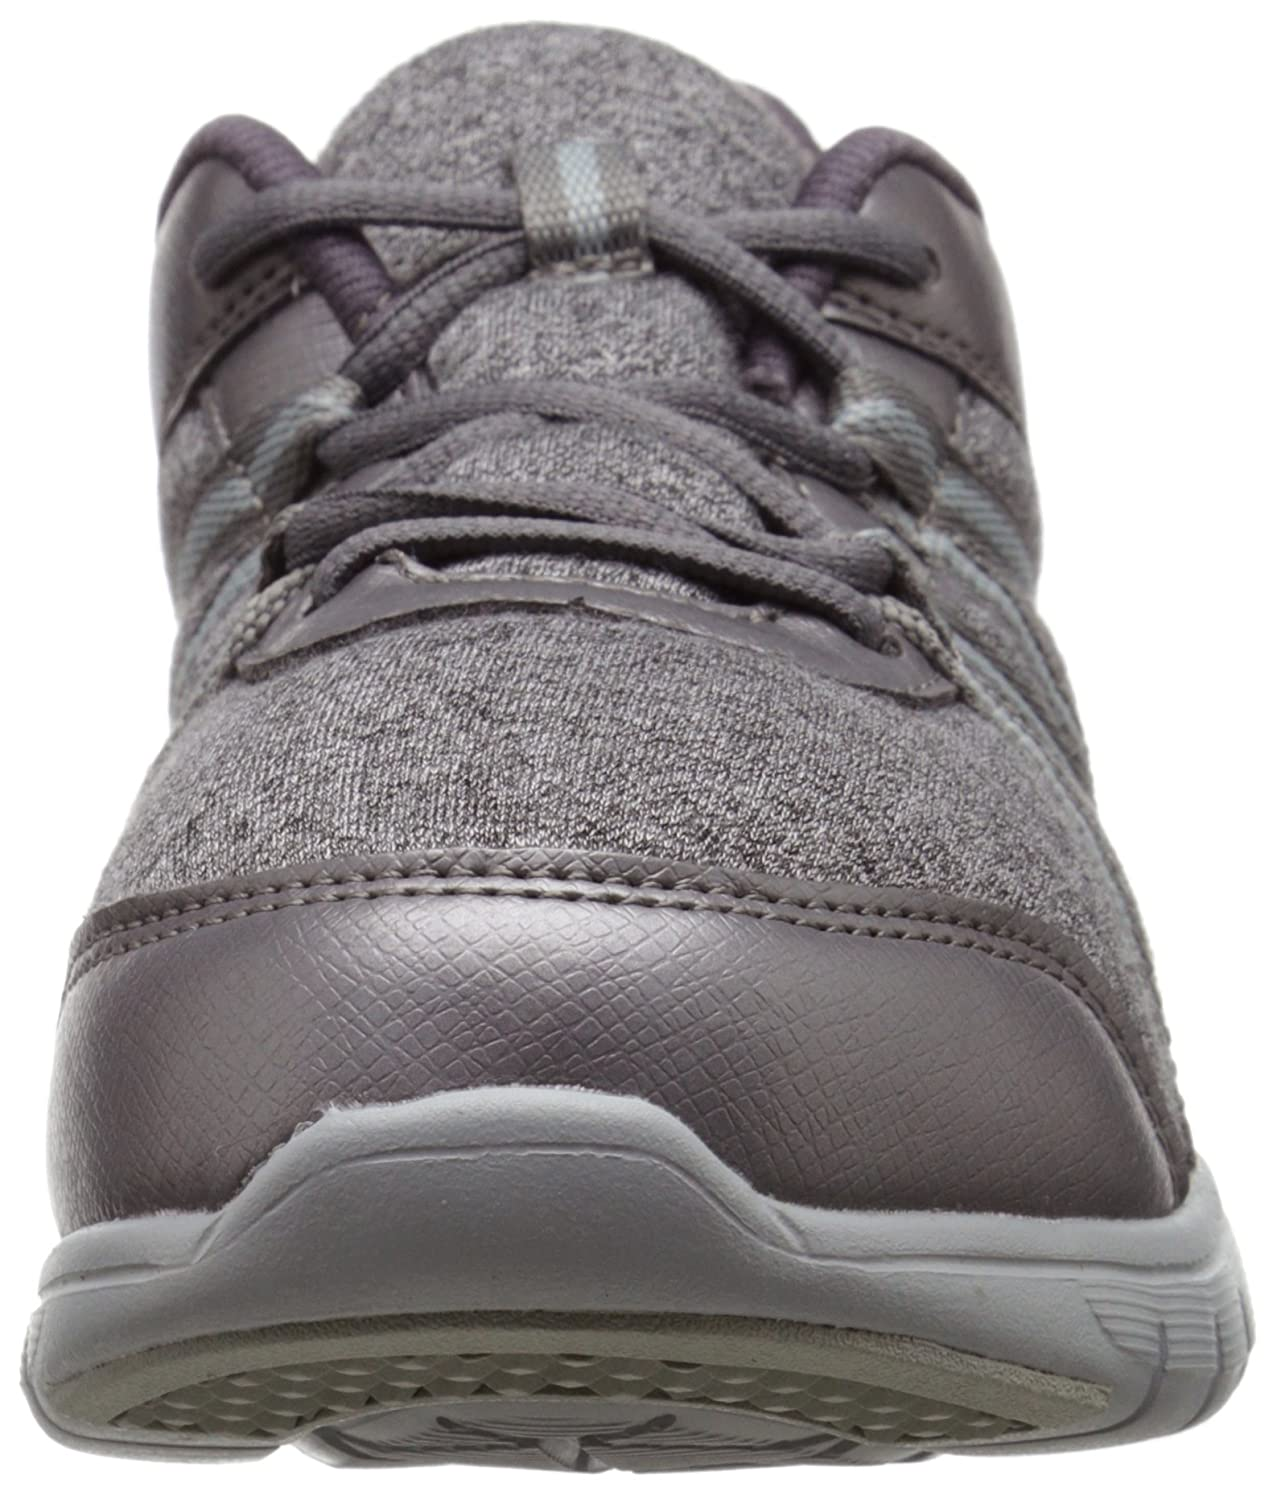 Propet Women's Tami Casual US|Grey/Silver Shoe B00T9YPWDI 6 B(M) US|Grey/Silver Casual 4ad03d